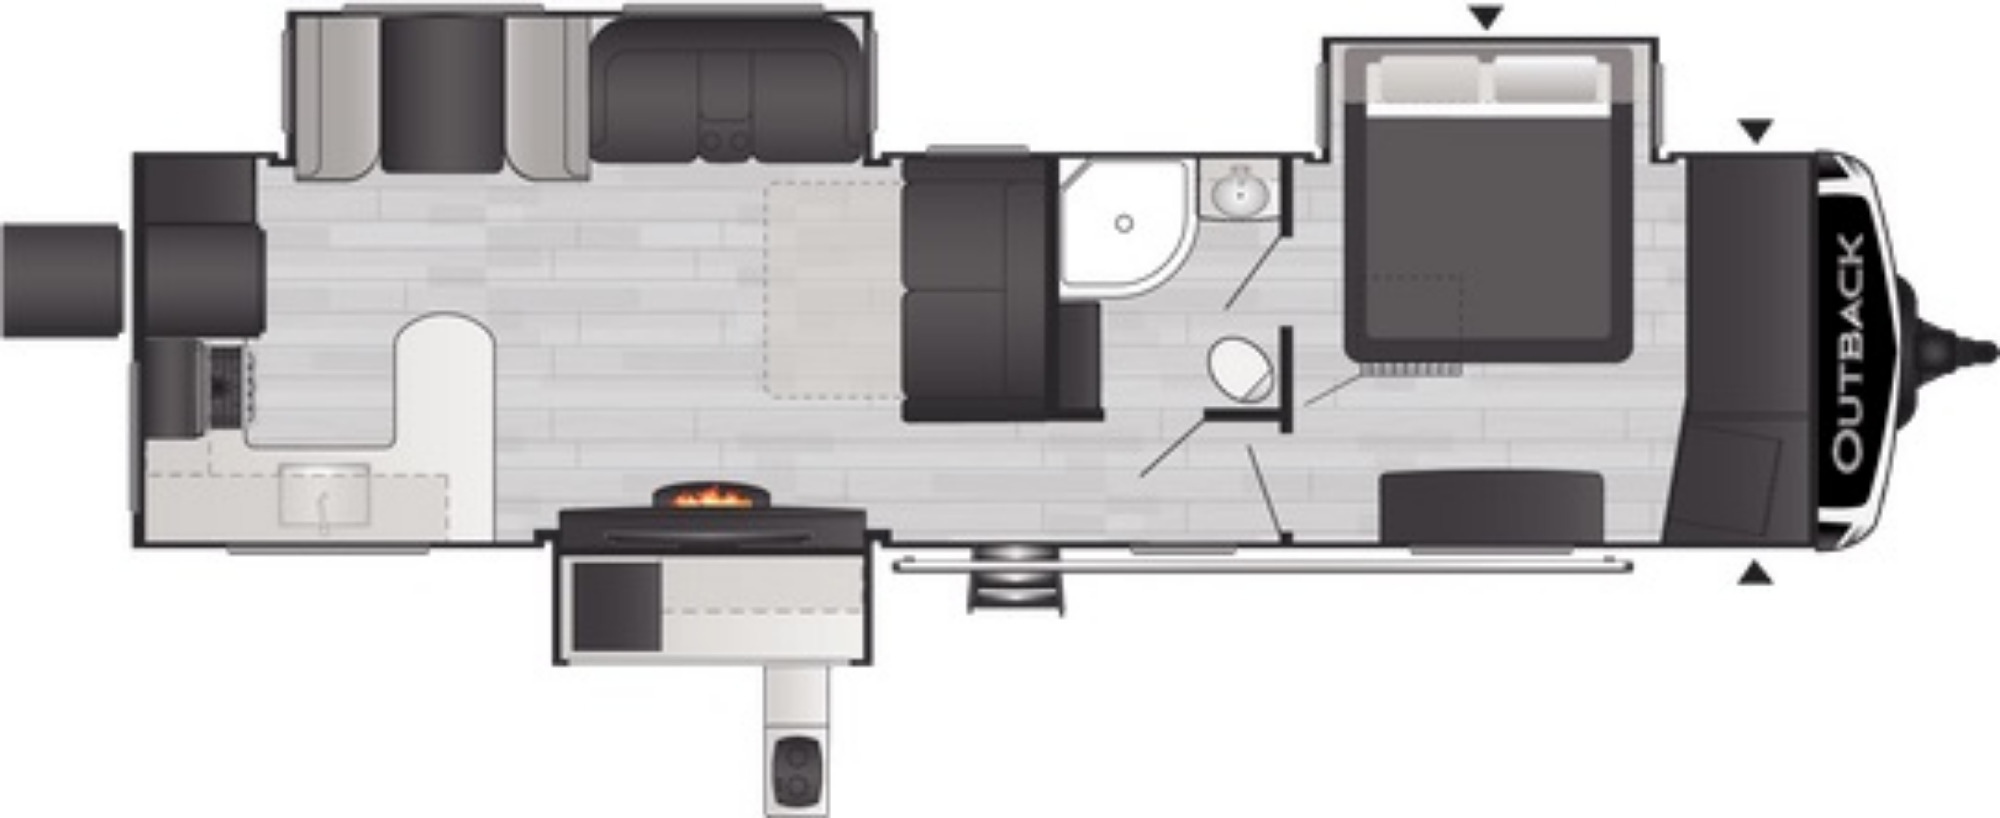 View Floor Plan for 2021 KEYSTONE OUTBACK 332ML